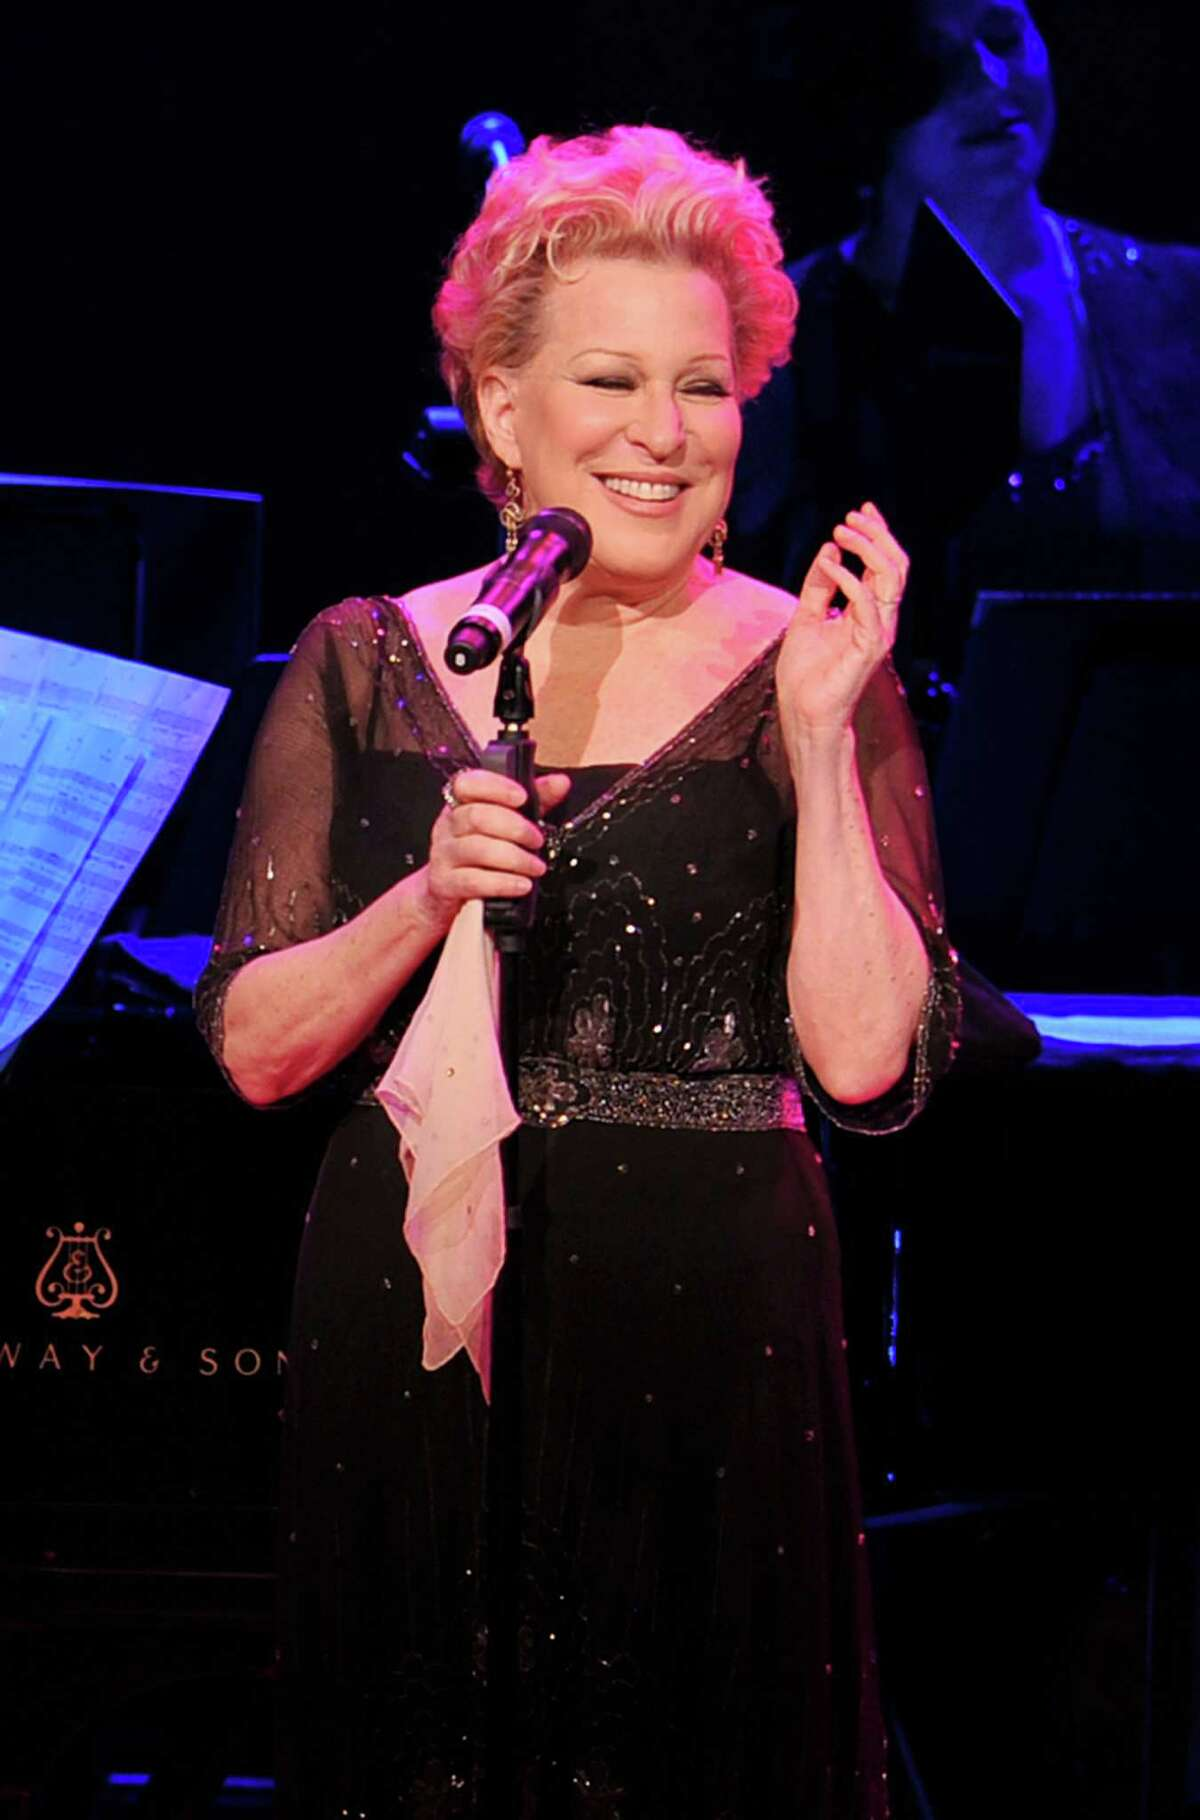 Singer Bette Midler performs onstage at the 120th Anniversary of Carnegie Hall on April 12, 2011 in New York City.